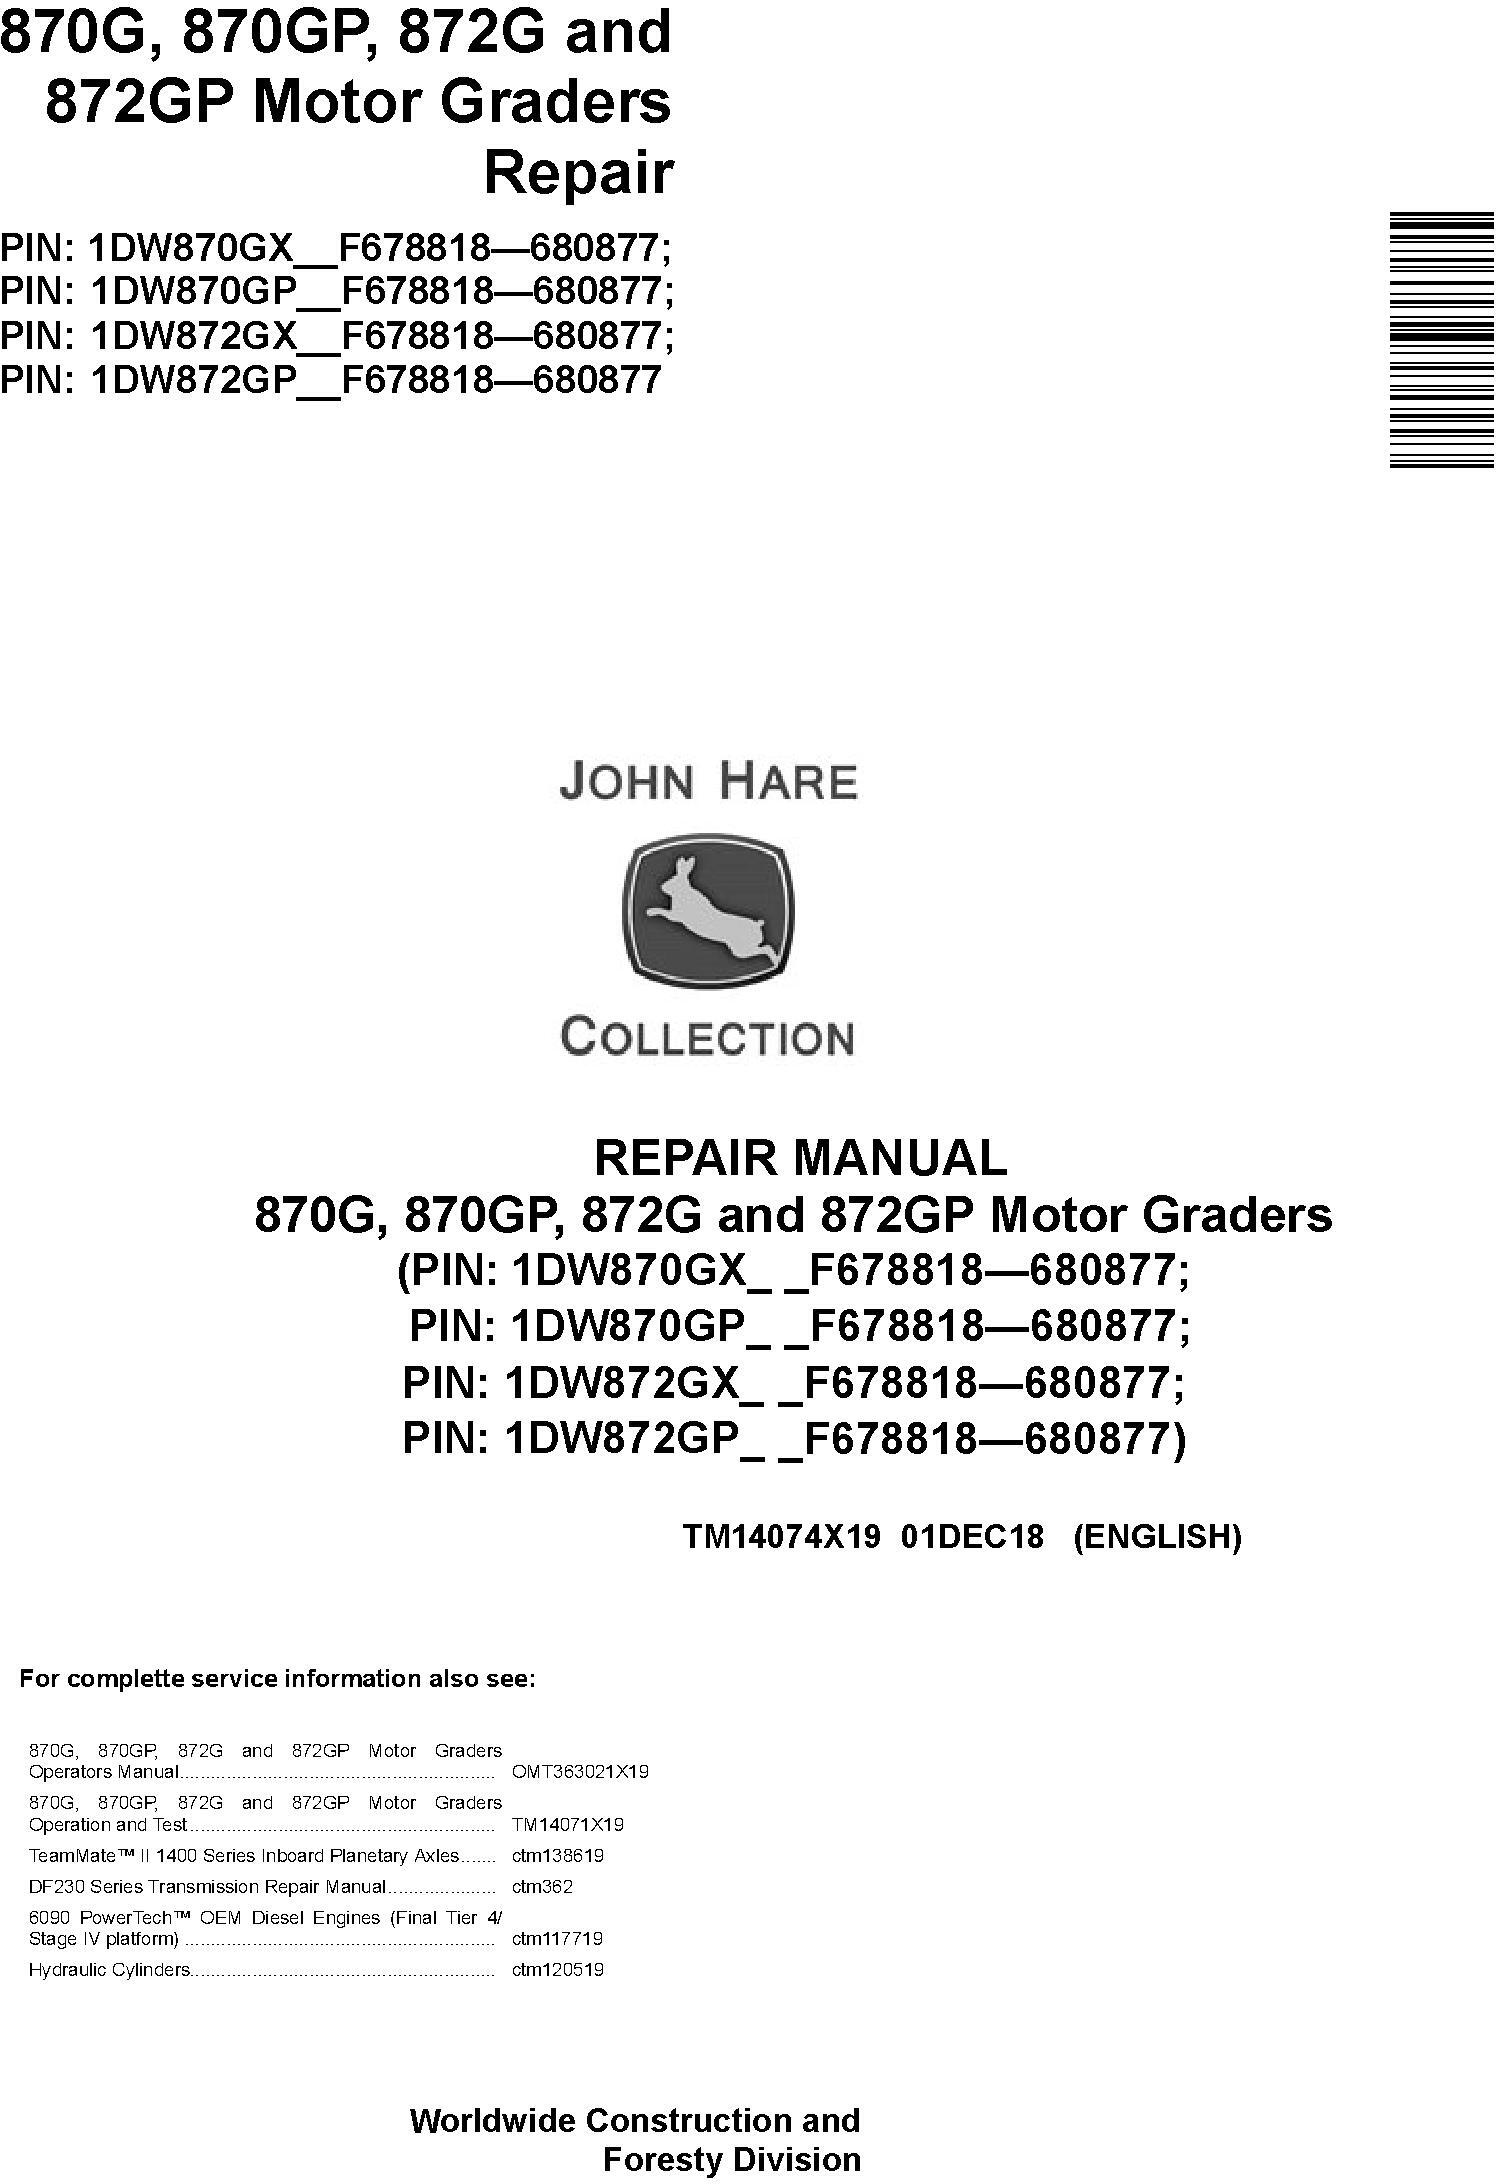 John Deere 870G, 870GP, 872G, 872GP (SN. F678818-680877) Motor Graders Repair Manual (TM14074X19) - 18995